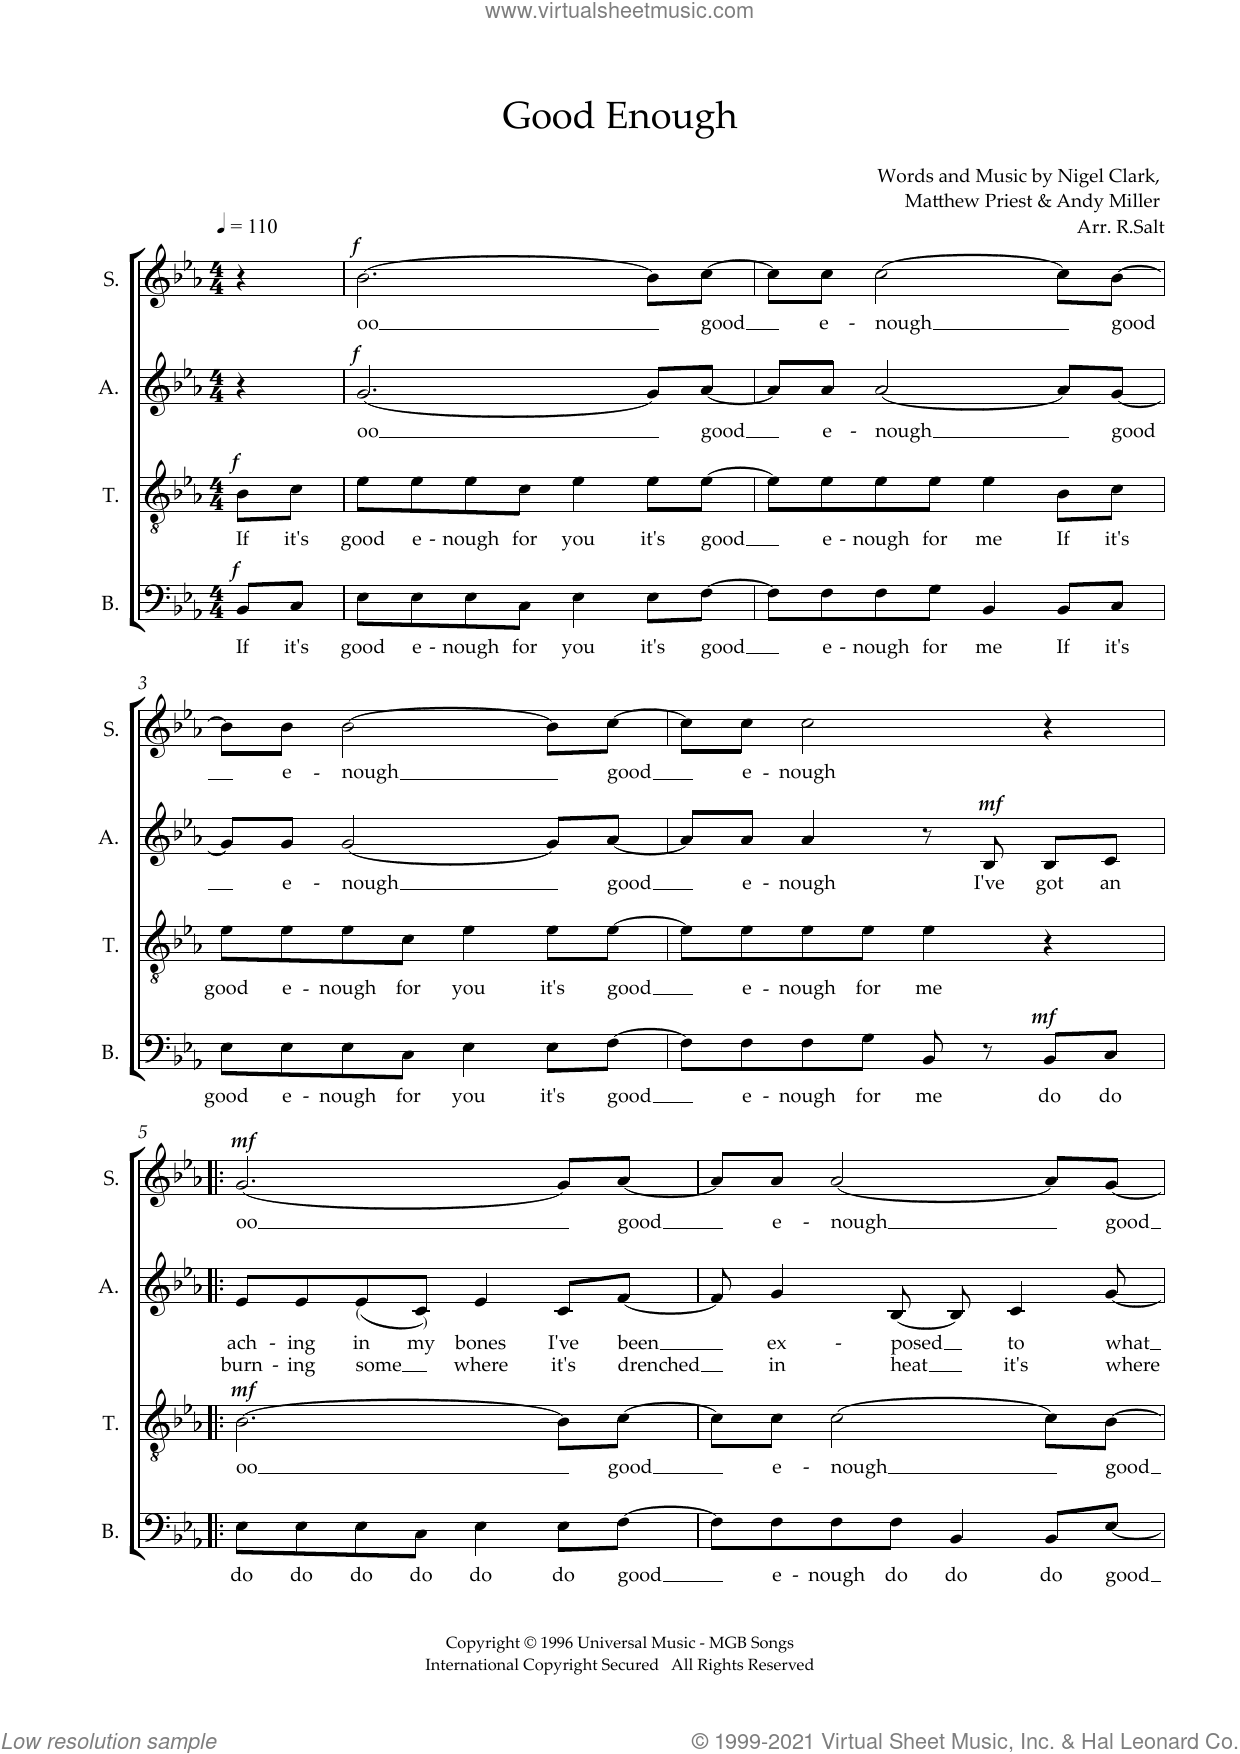 Good Enough (arr. Richard Salt) sheet music for choir (SATB: soprano, alto, tenor, bass) by Dodgy, Richard Salt, Andy Miller, Mathew Priest and Nigel Clark, intermediate skill level